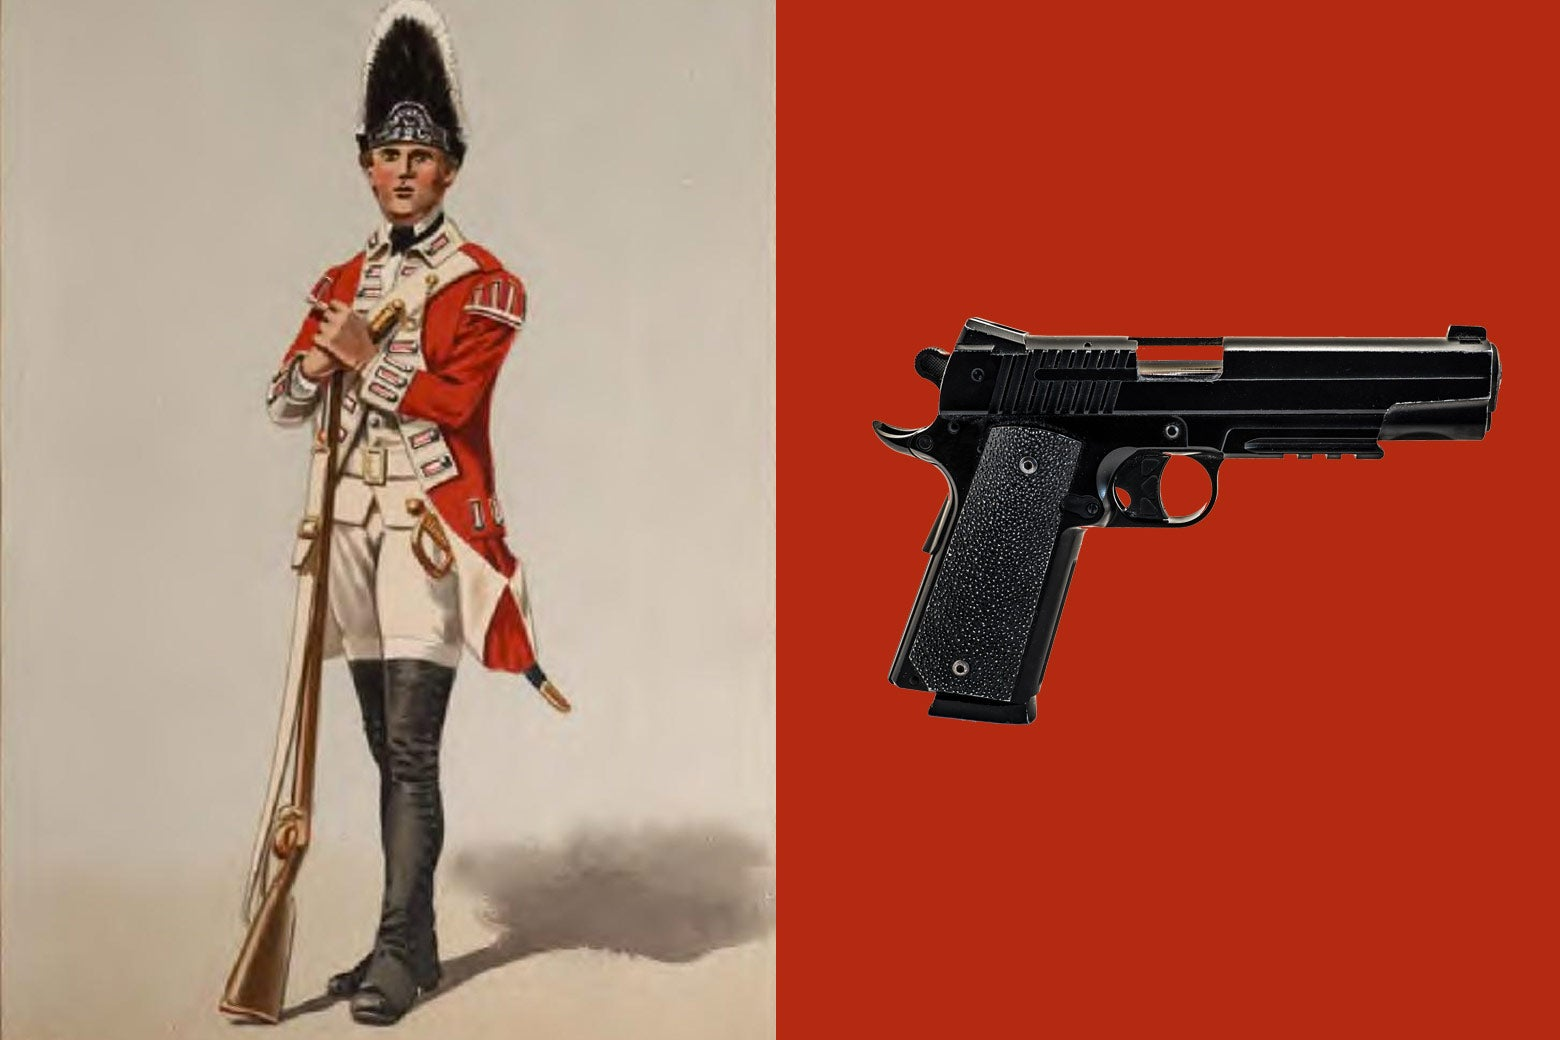 At left: a British soldier with an old-fashion gun. At right: a modern handgun.